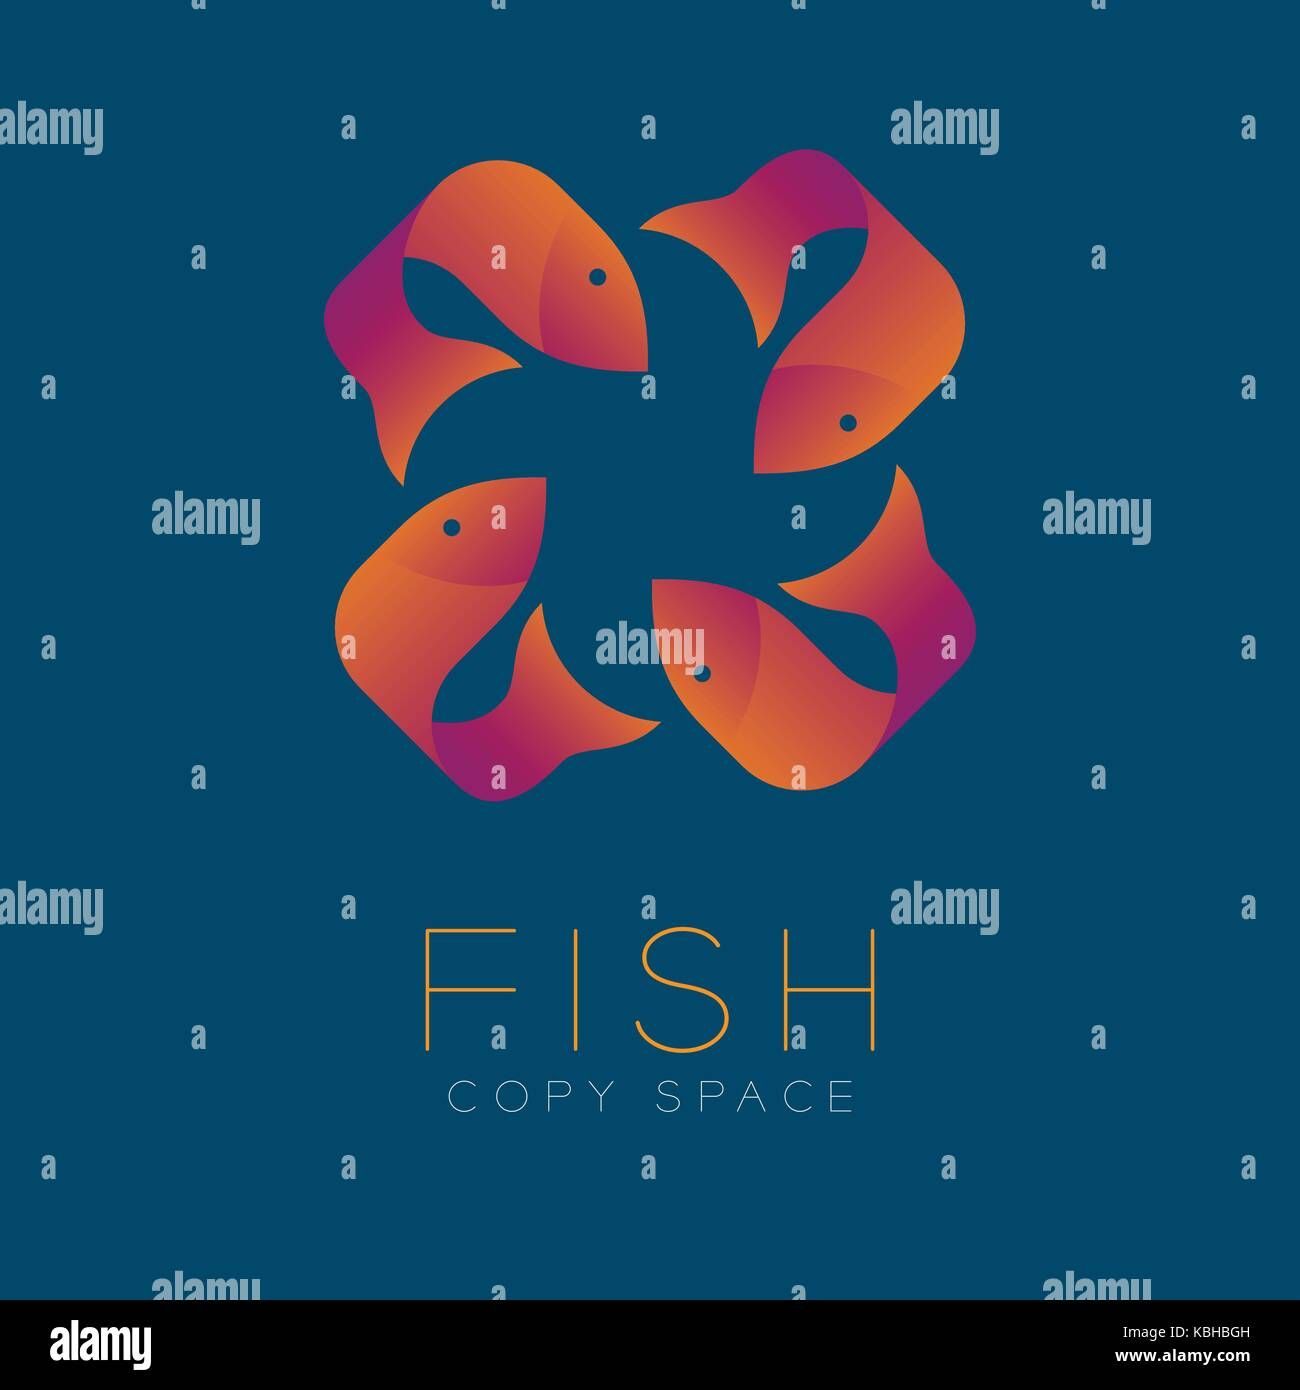 Four fish symbol icon set orange violet gradient color design stock four fish symbol icon set orange violet gradient color design illustration isolated on blue color background with fish text and copy space vector eps buycottarizona Gallery